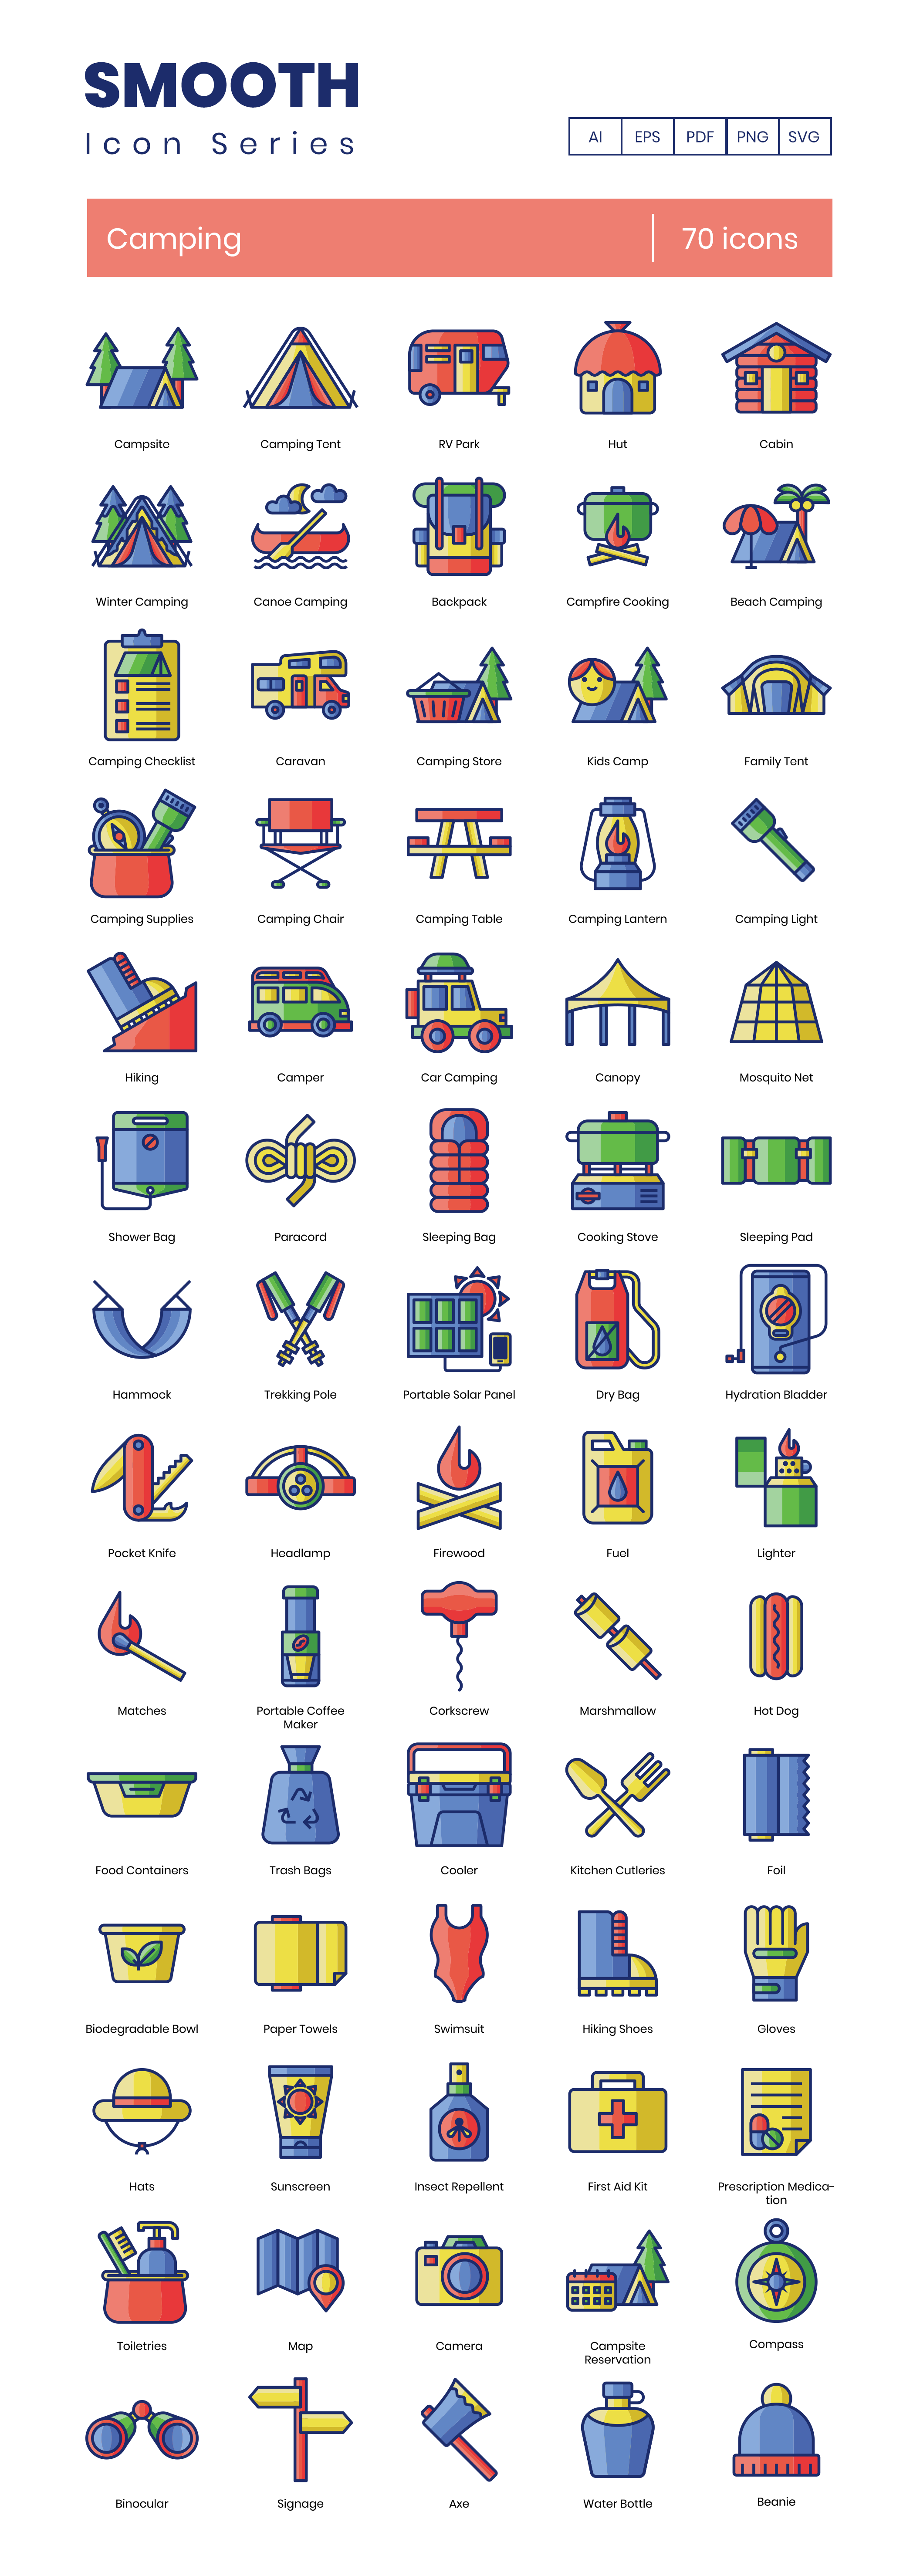 Camping Trip Vector Icons Preview Image